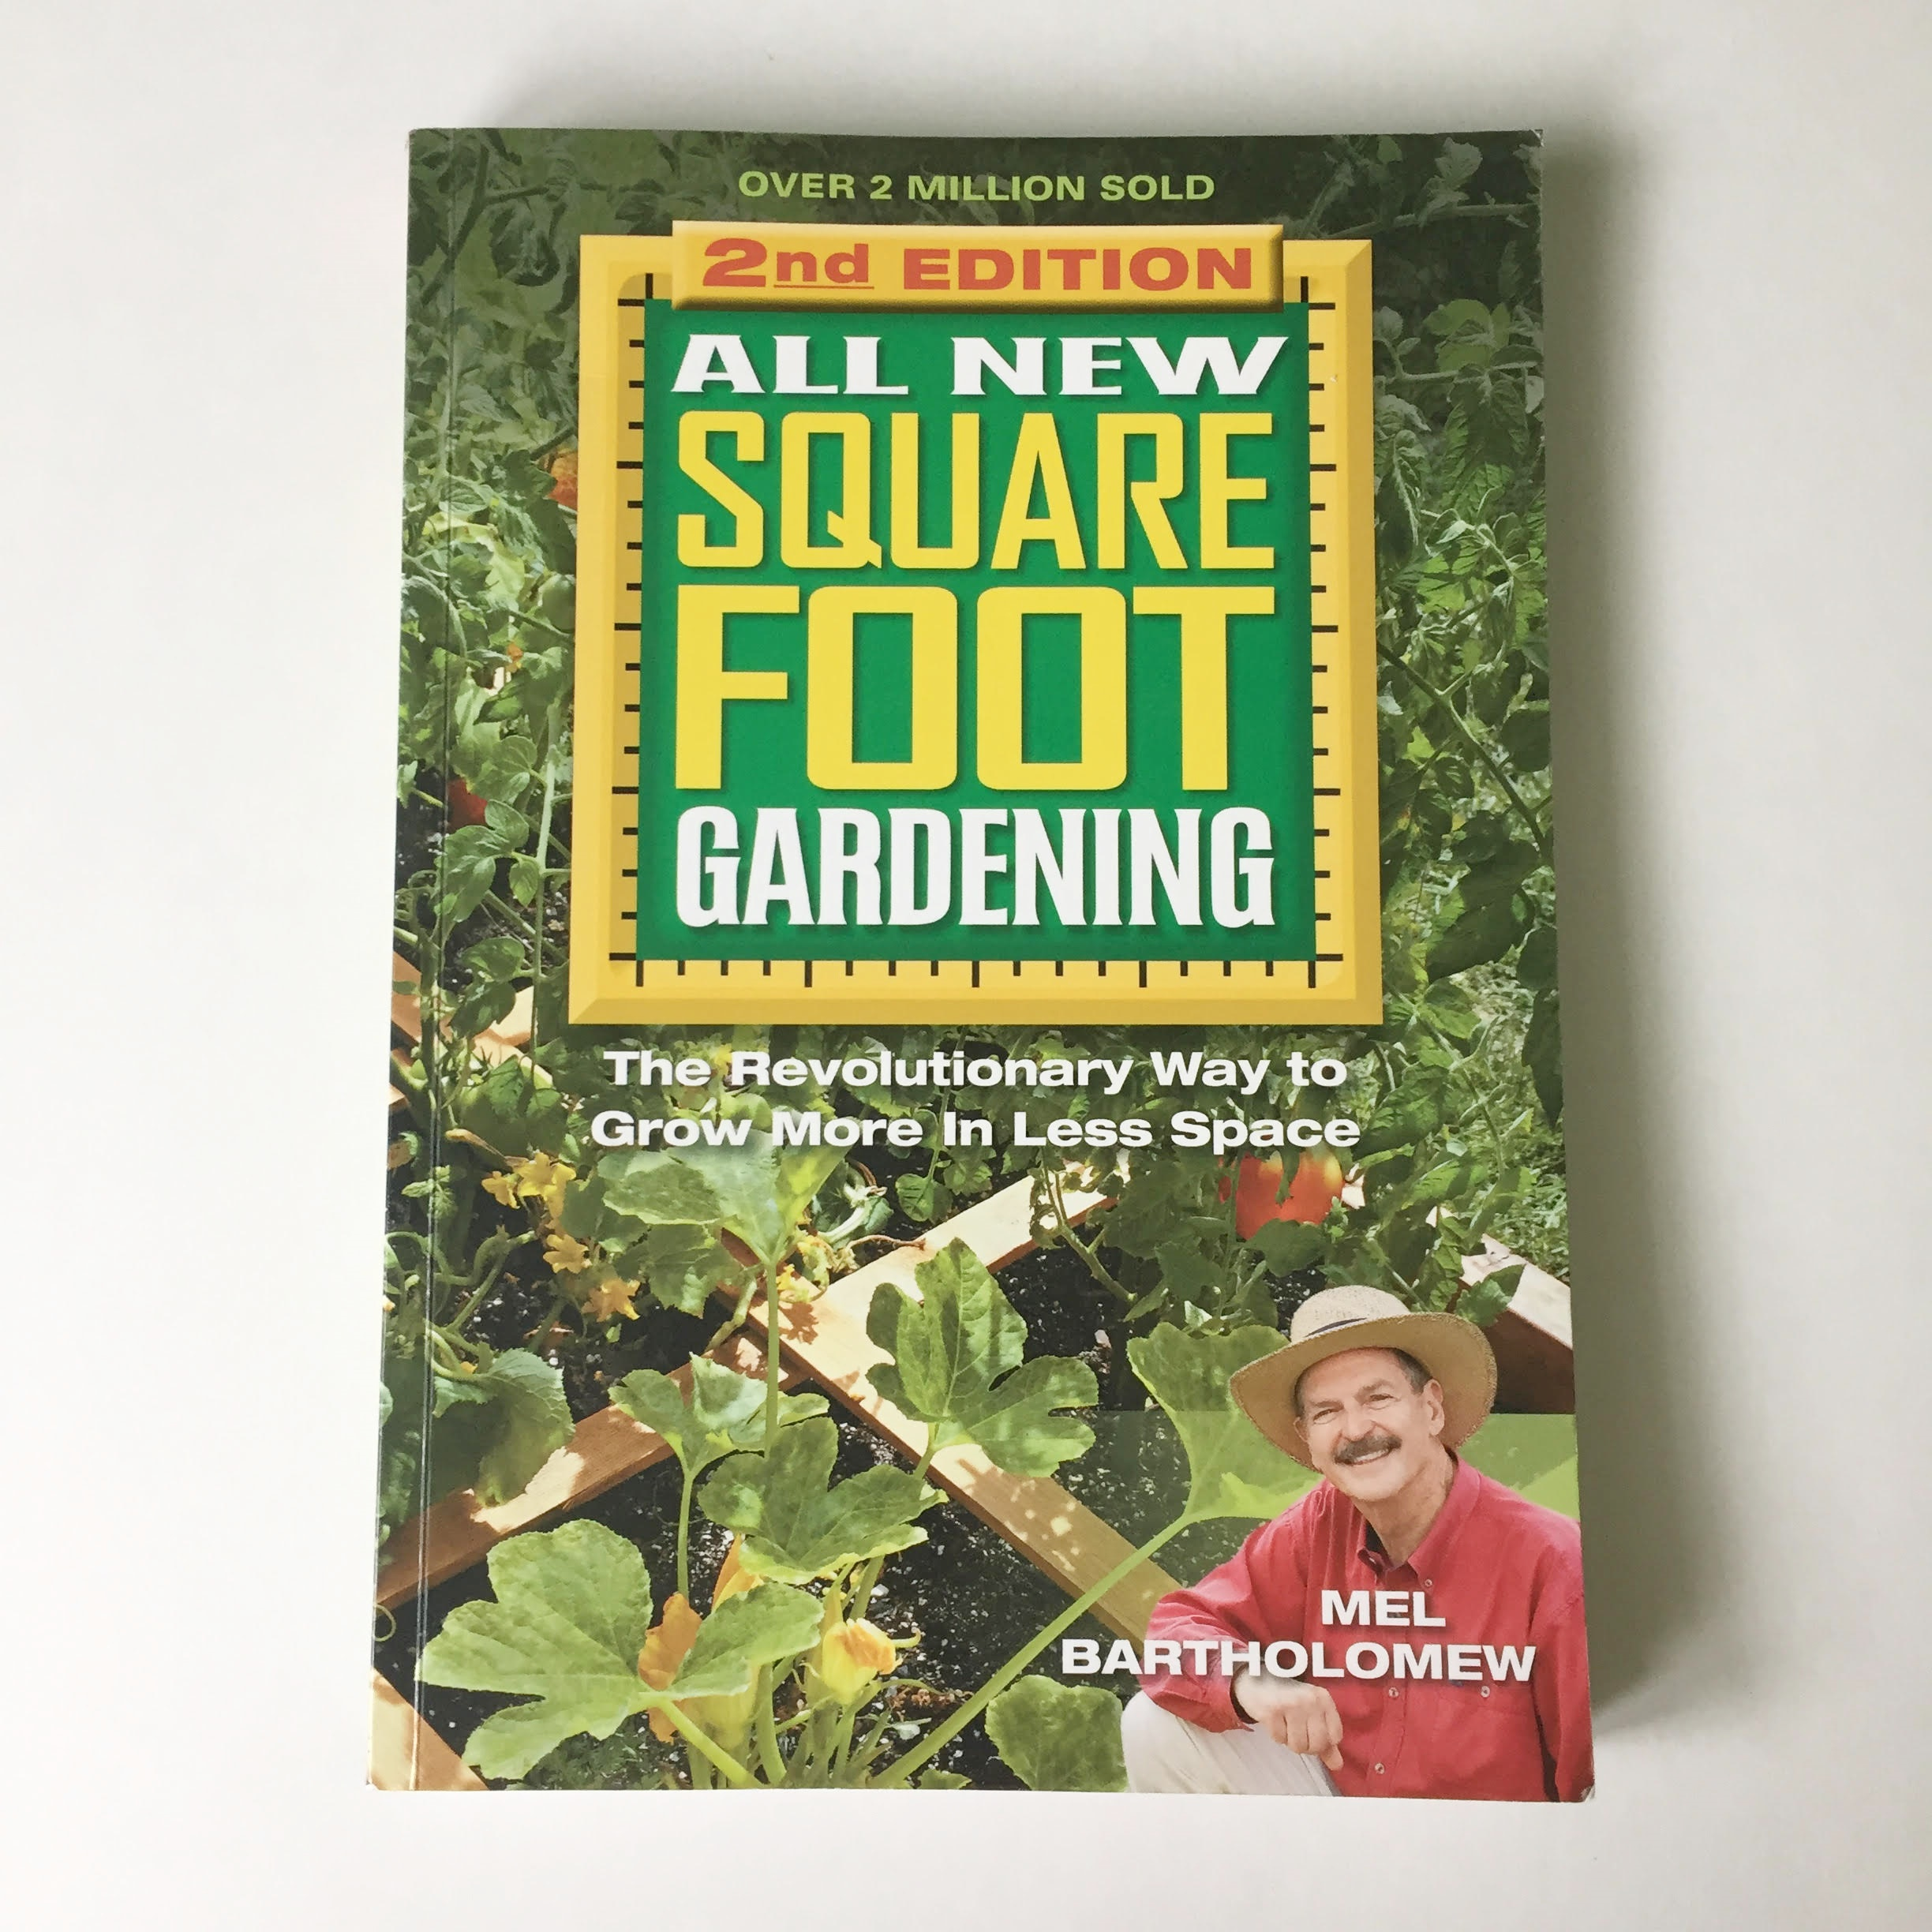 Square foot gardening book - Of Course Eli Helped With Every Step He Especially Loved When It Came Time To Plant And Water The Seeds Oh How I Love Those Little Working Hands And